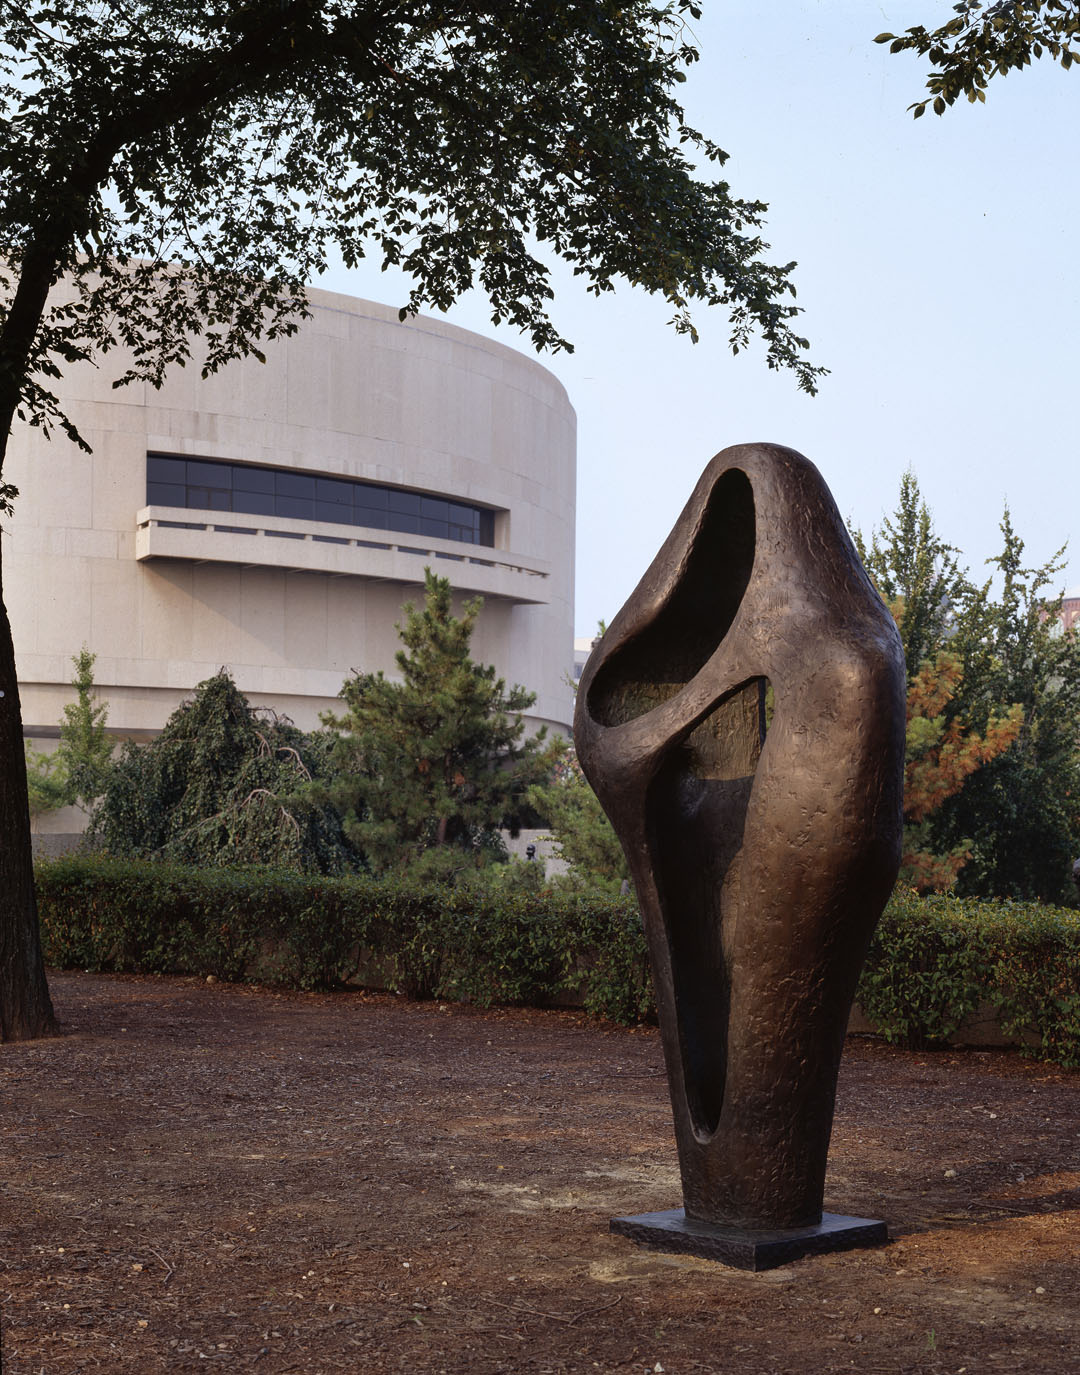 A bronze sculpture is in the photo foreground. A line of bushes, trees and the round shape of the Hirshhorn Museum are in the background.